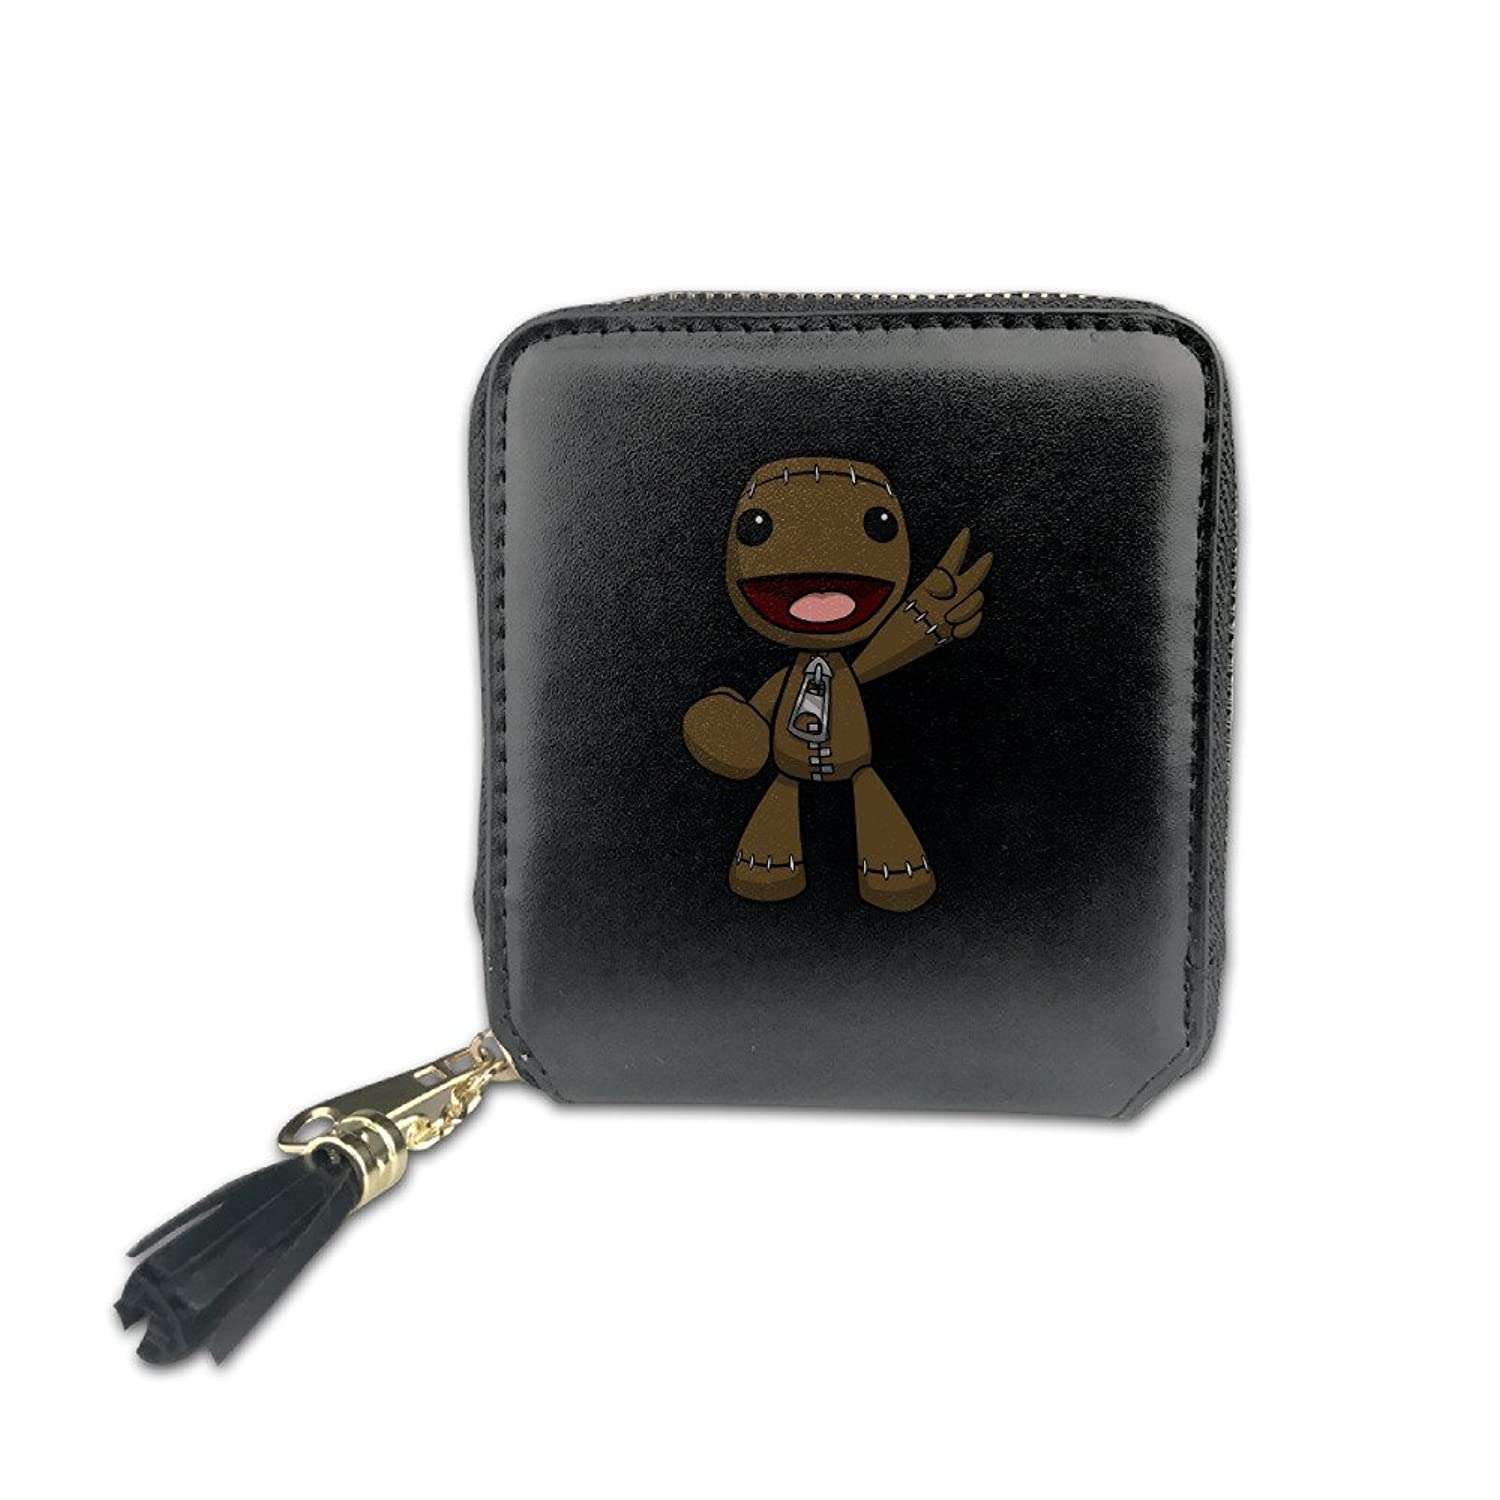 Maog Sackboy Women Mini Wallet